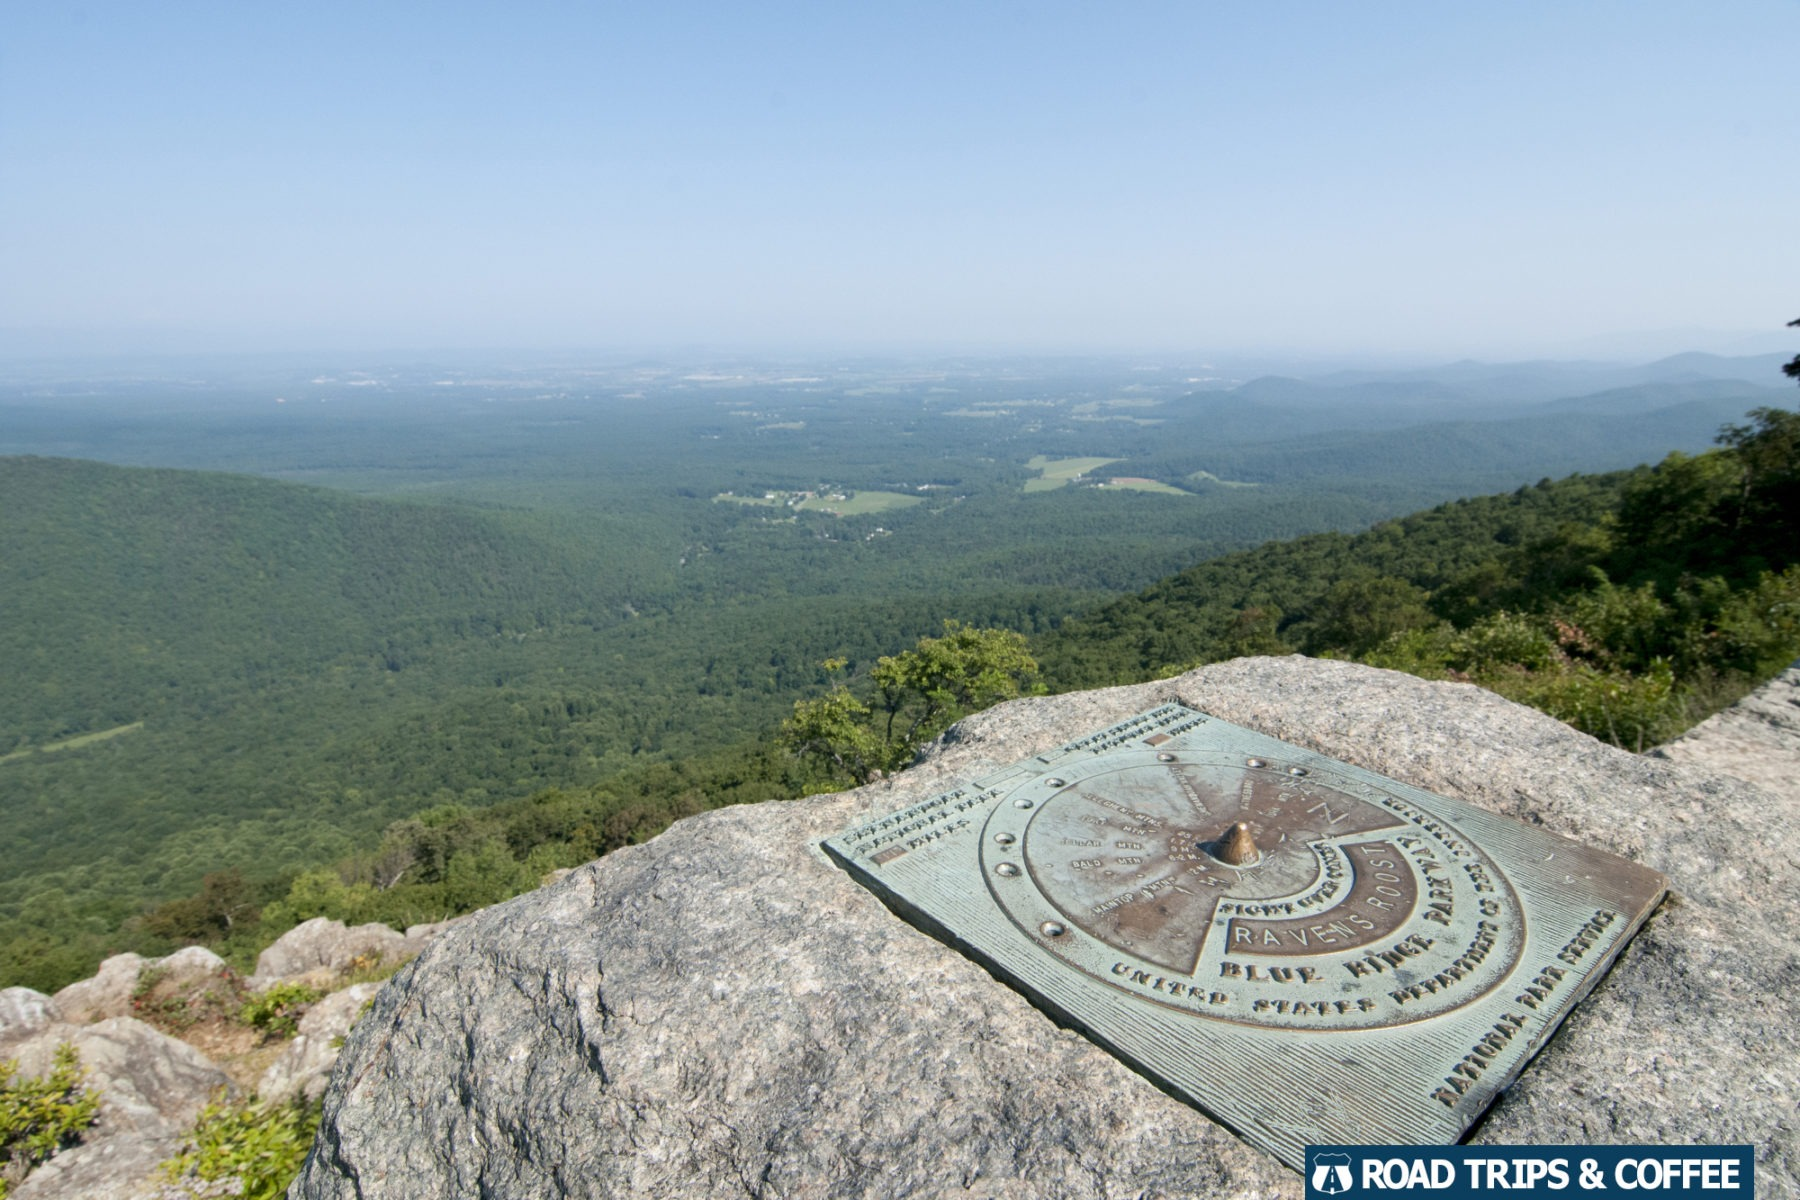 A plaque showing the landmarks in the distance at Ravens Roost Overlook on the Blue Ridge Parkway in Virginia